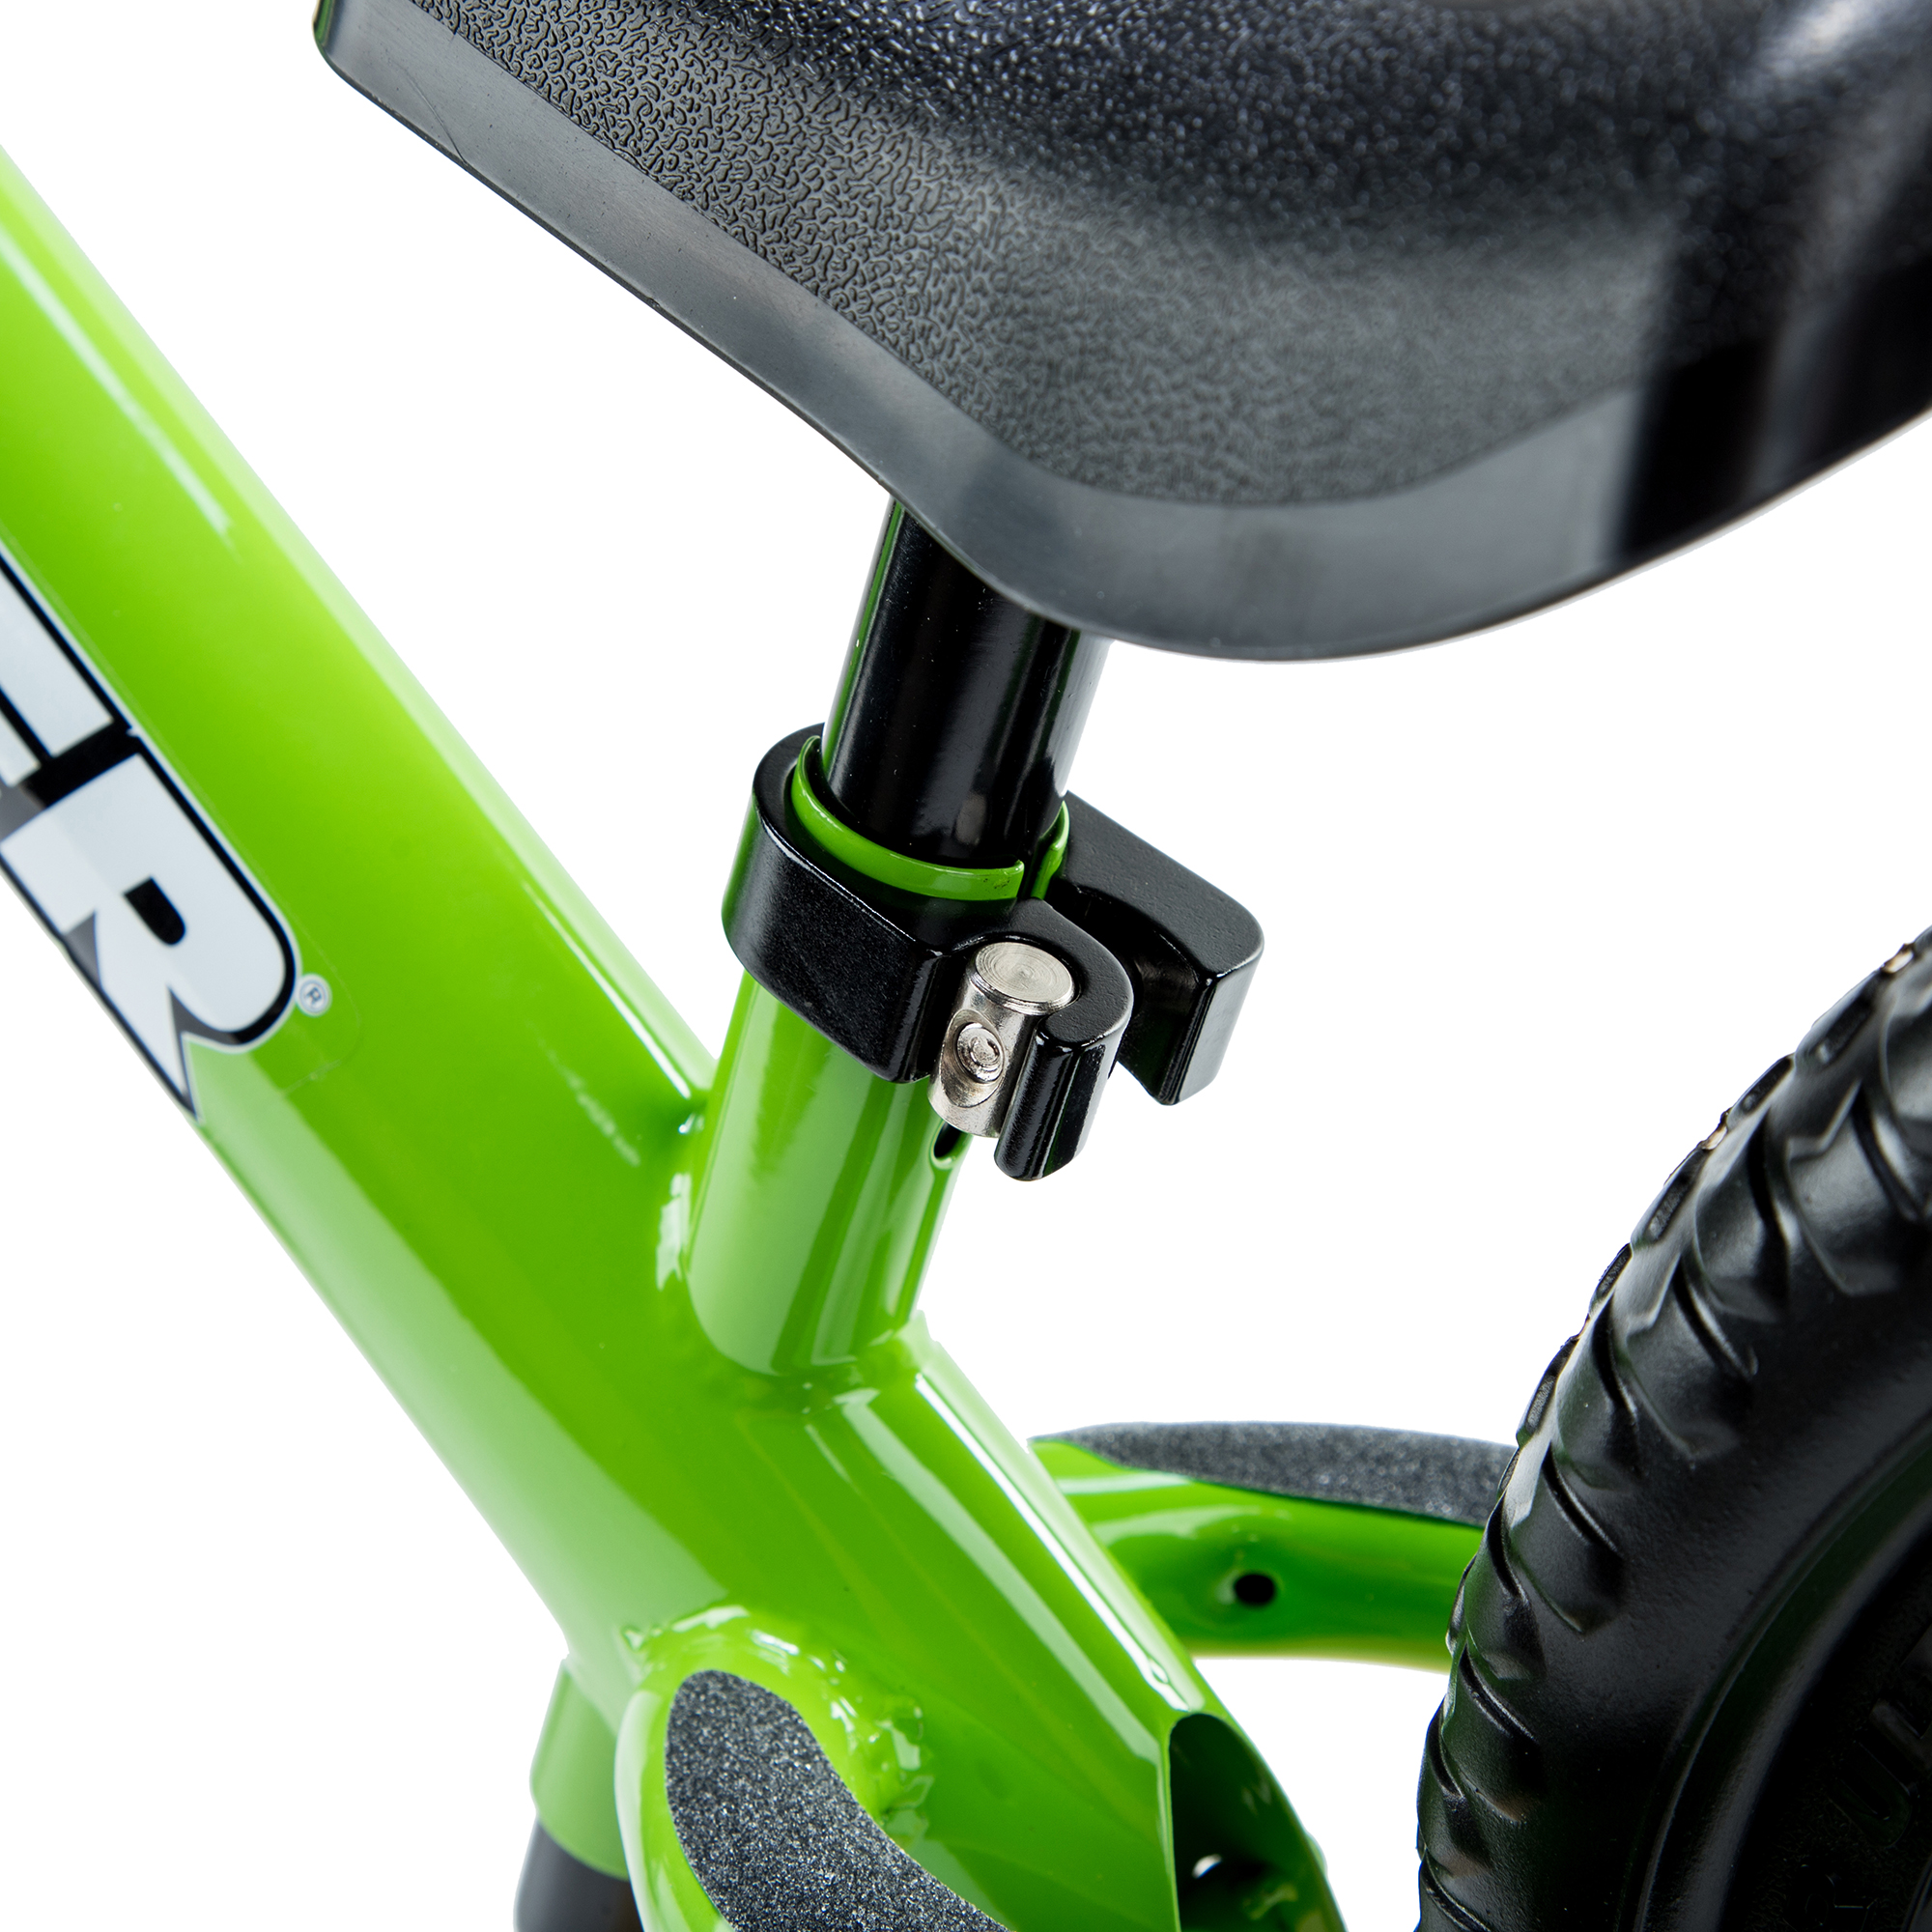 Ages 18 Months to 3 Years Strider 12 Classic Balance Bike